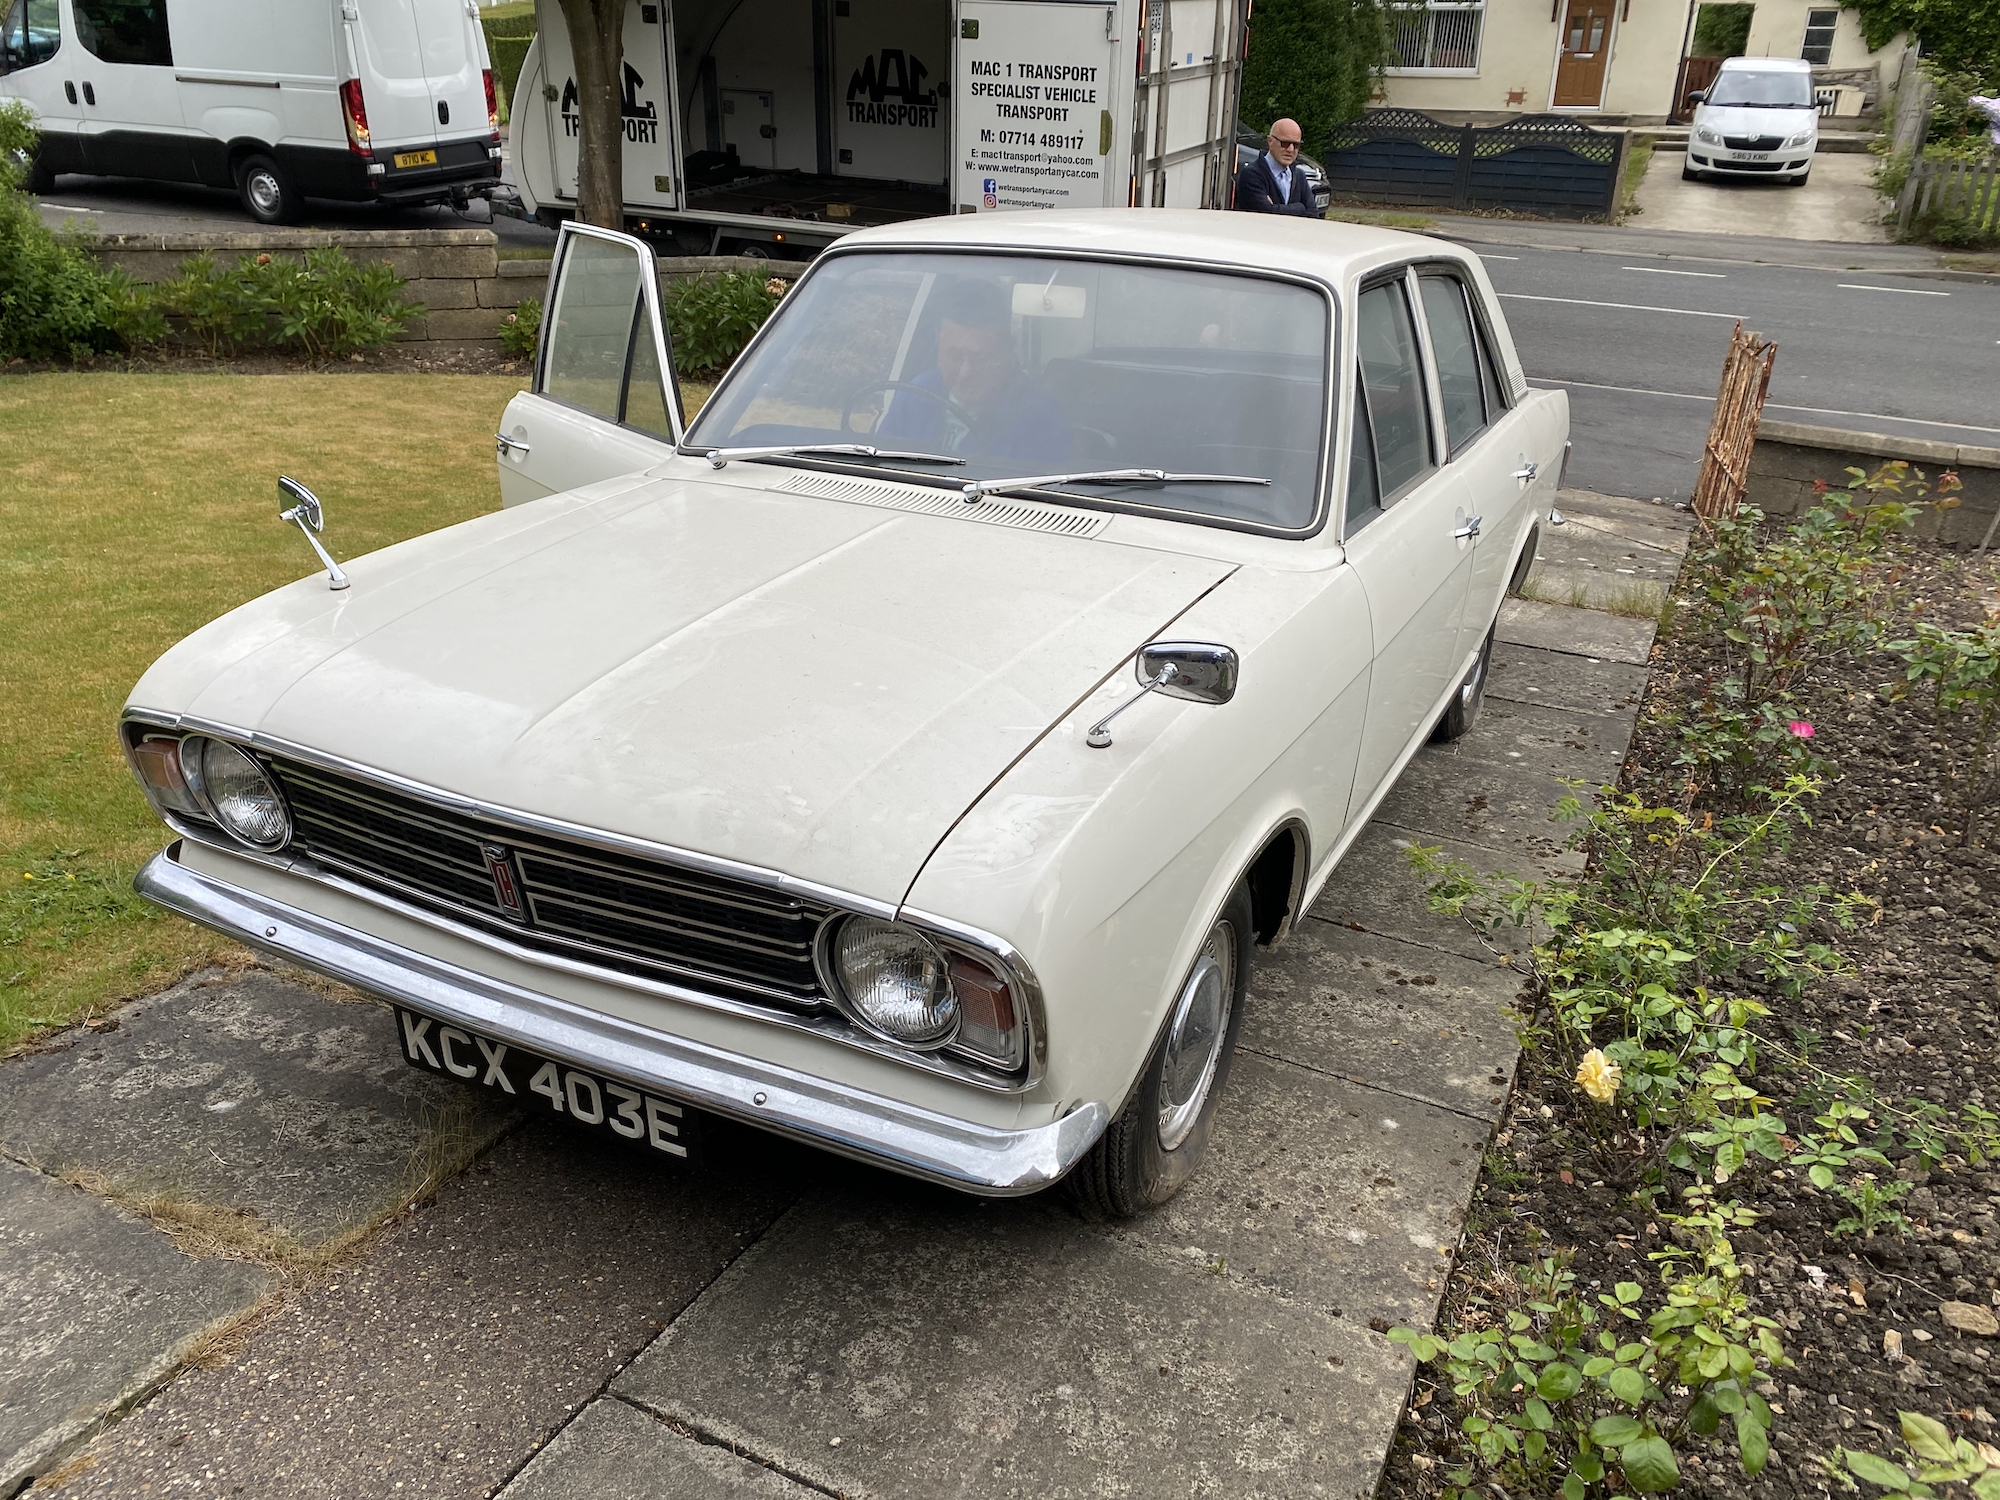 1967 FORD CORTINA 1500 SUPER AUTOMATIC - 6,210 MILES FROM NEW